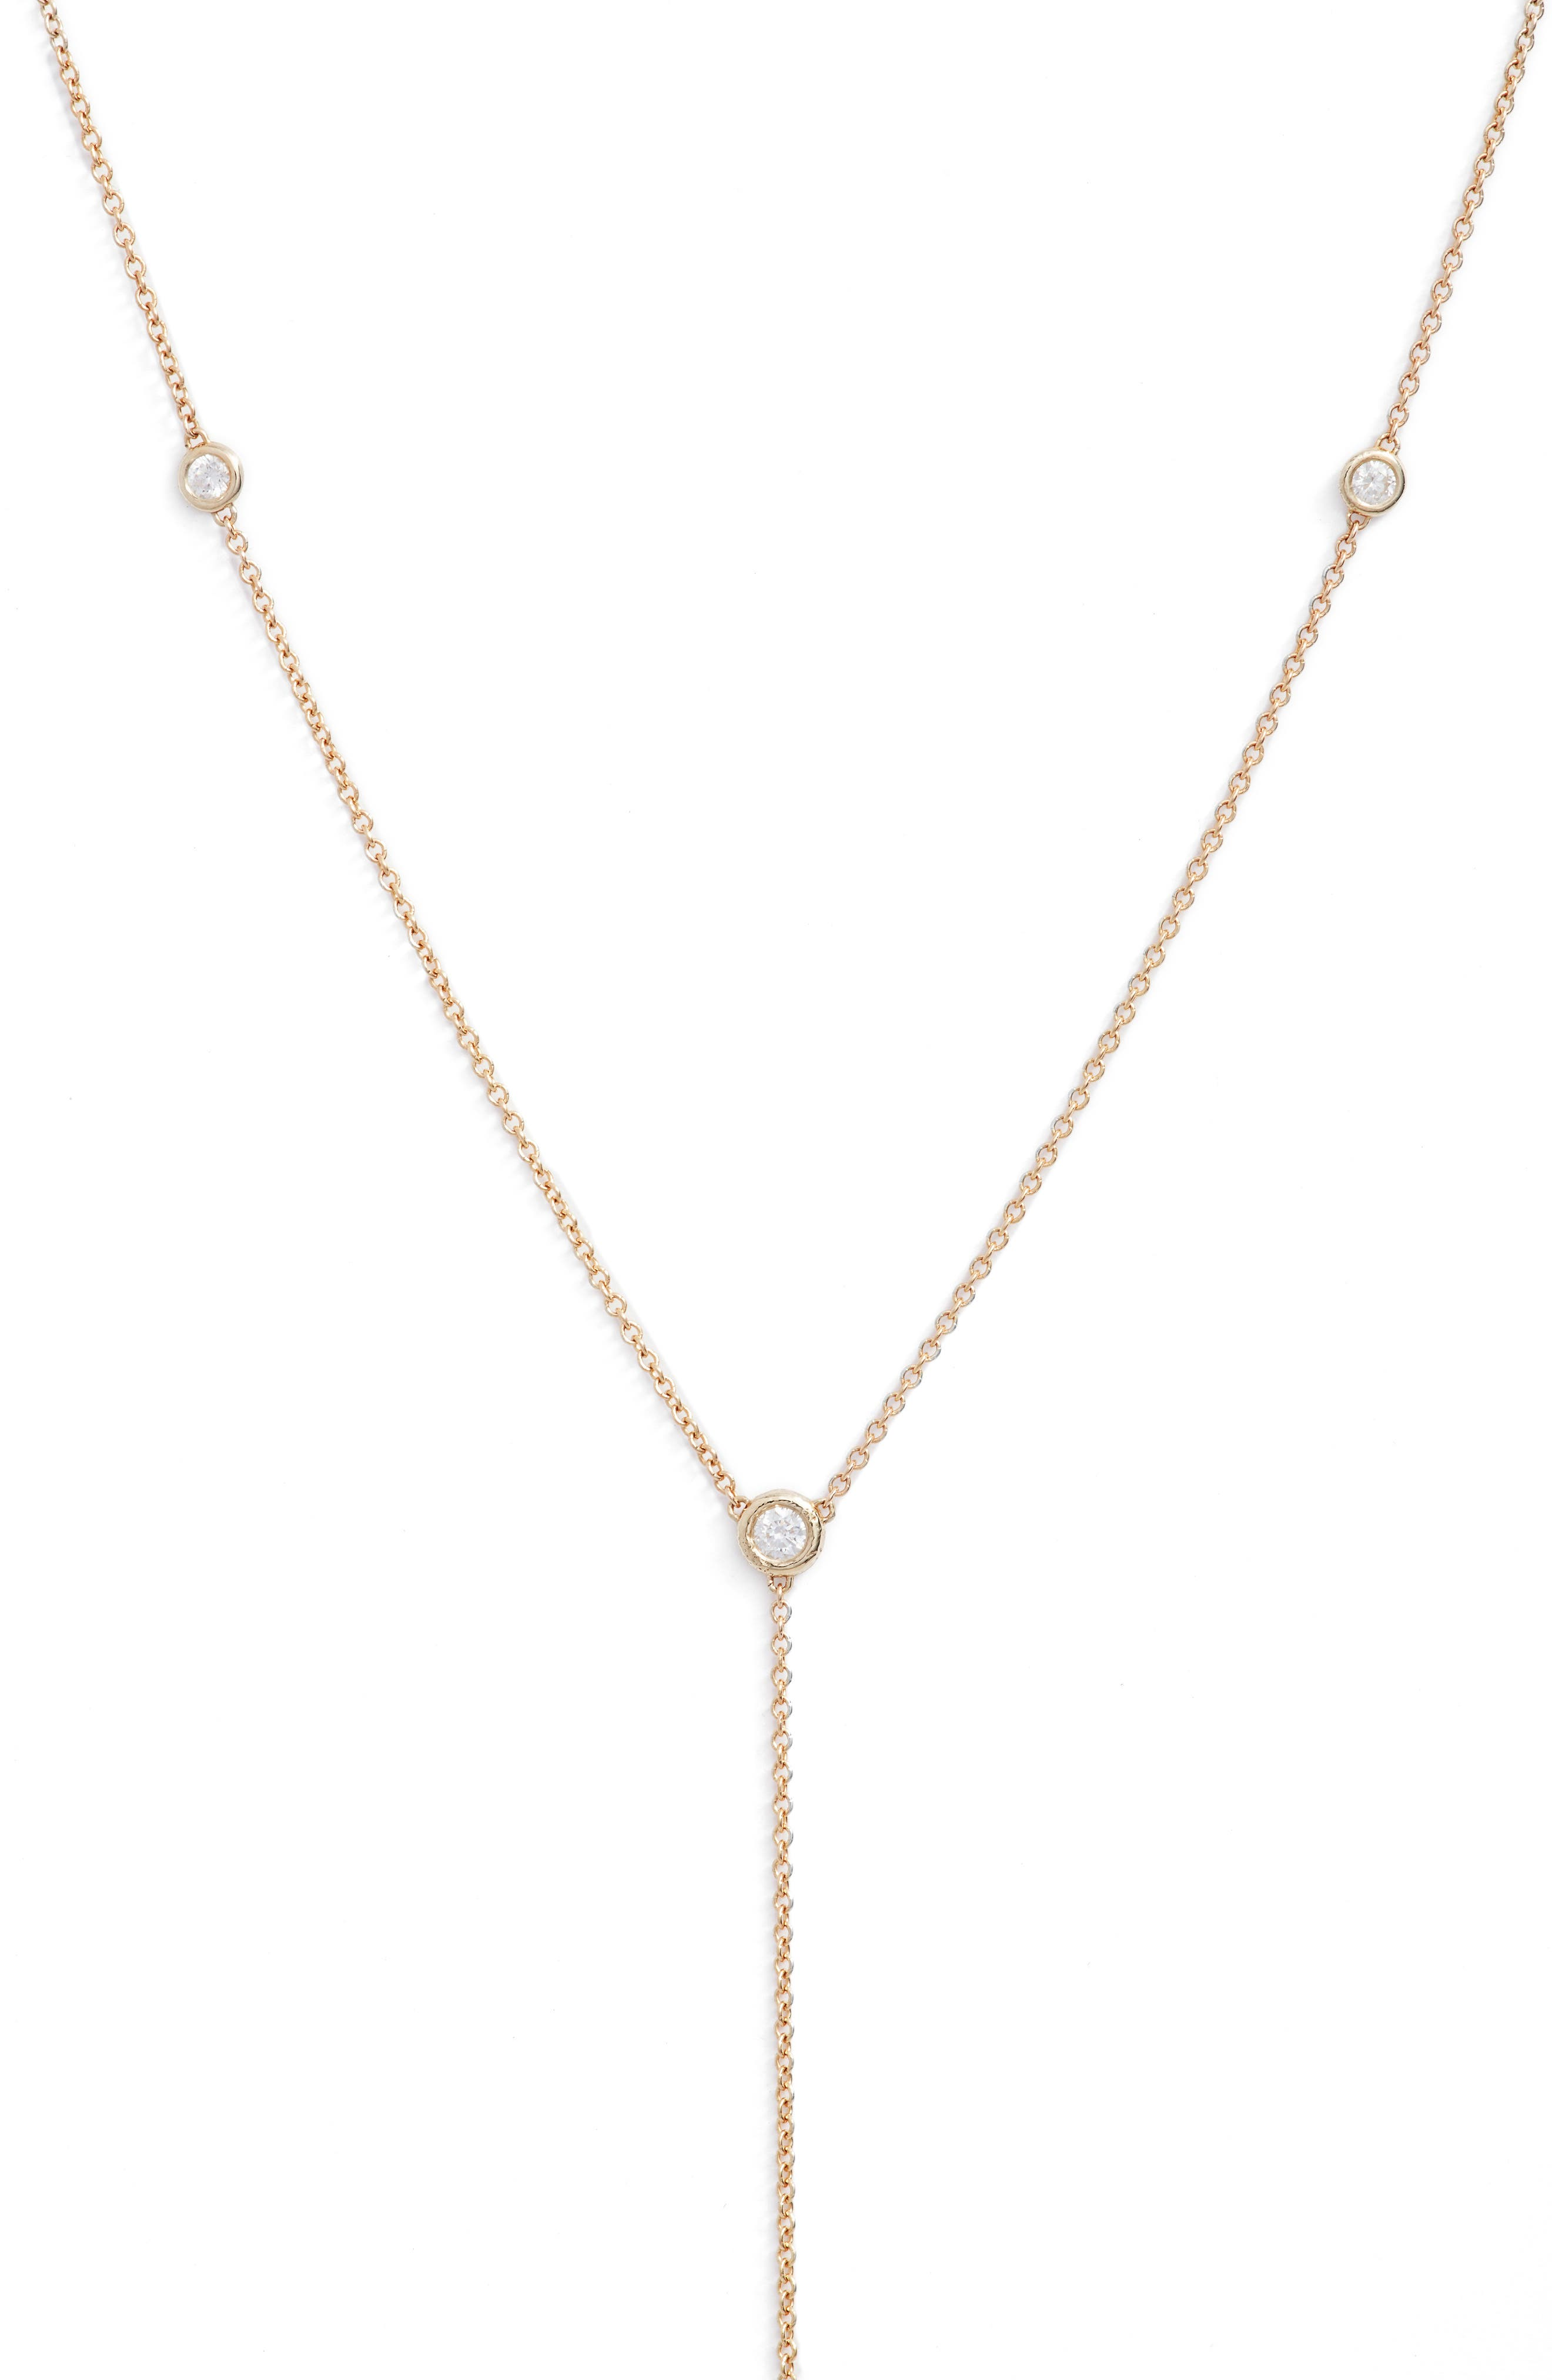 Scattered Diamond Bezel Y-Necklace,                             Main thumbnail 1, color,                             YELLOW GOLD